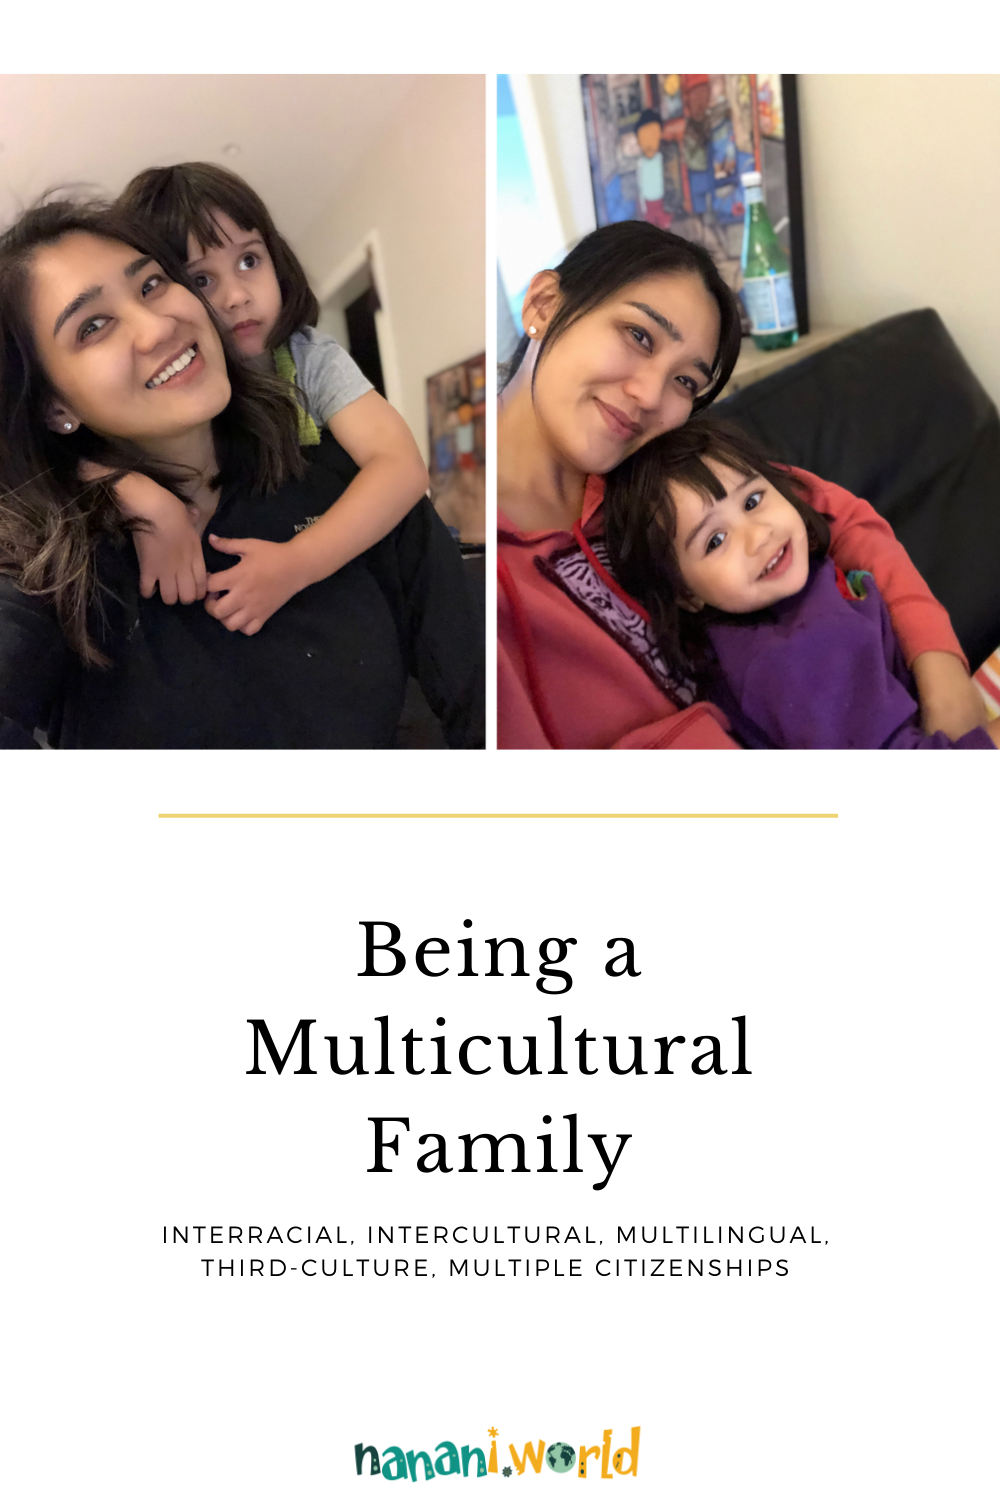 Being a multicultural family